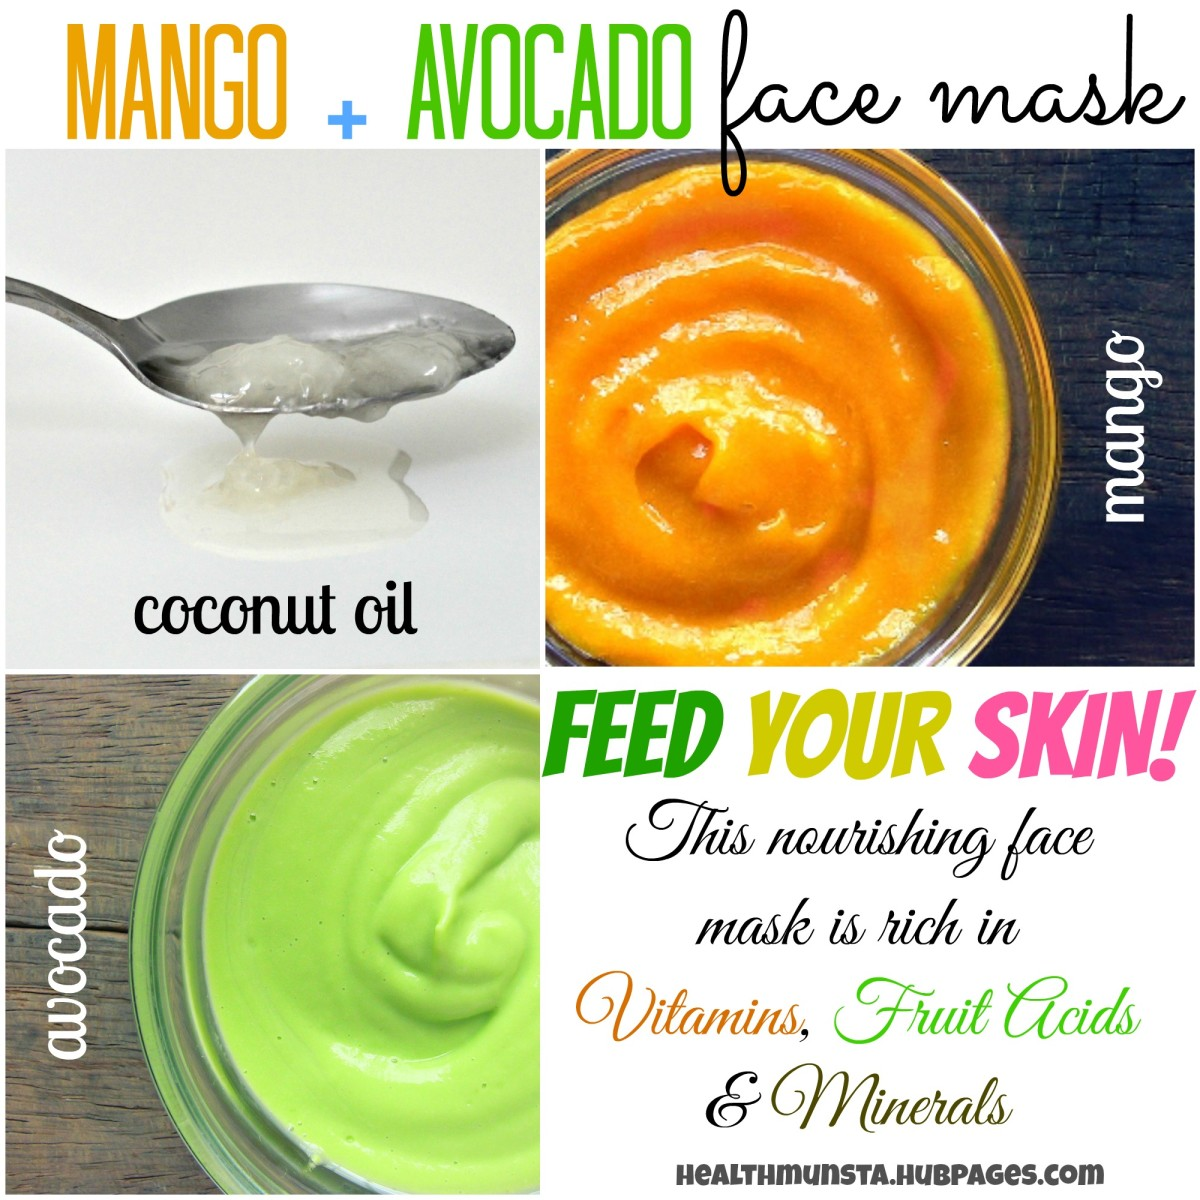 Try this awesome face mask with mango, avocado and coconut oil. Oh God, I never knew mango and coconut oil would smell this good!